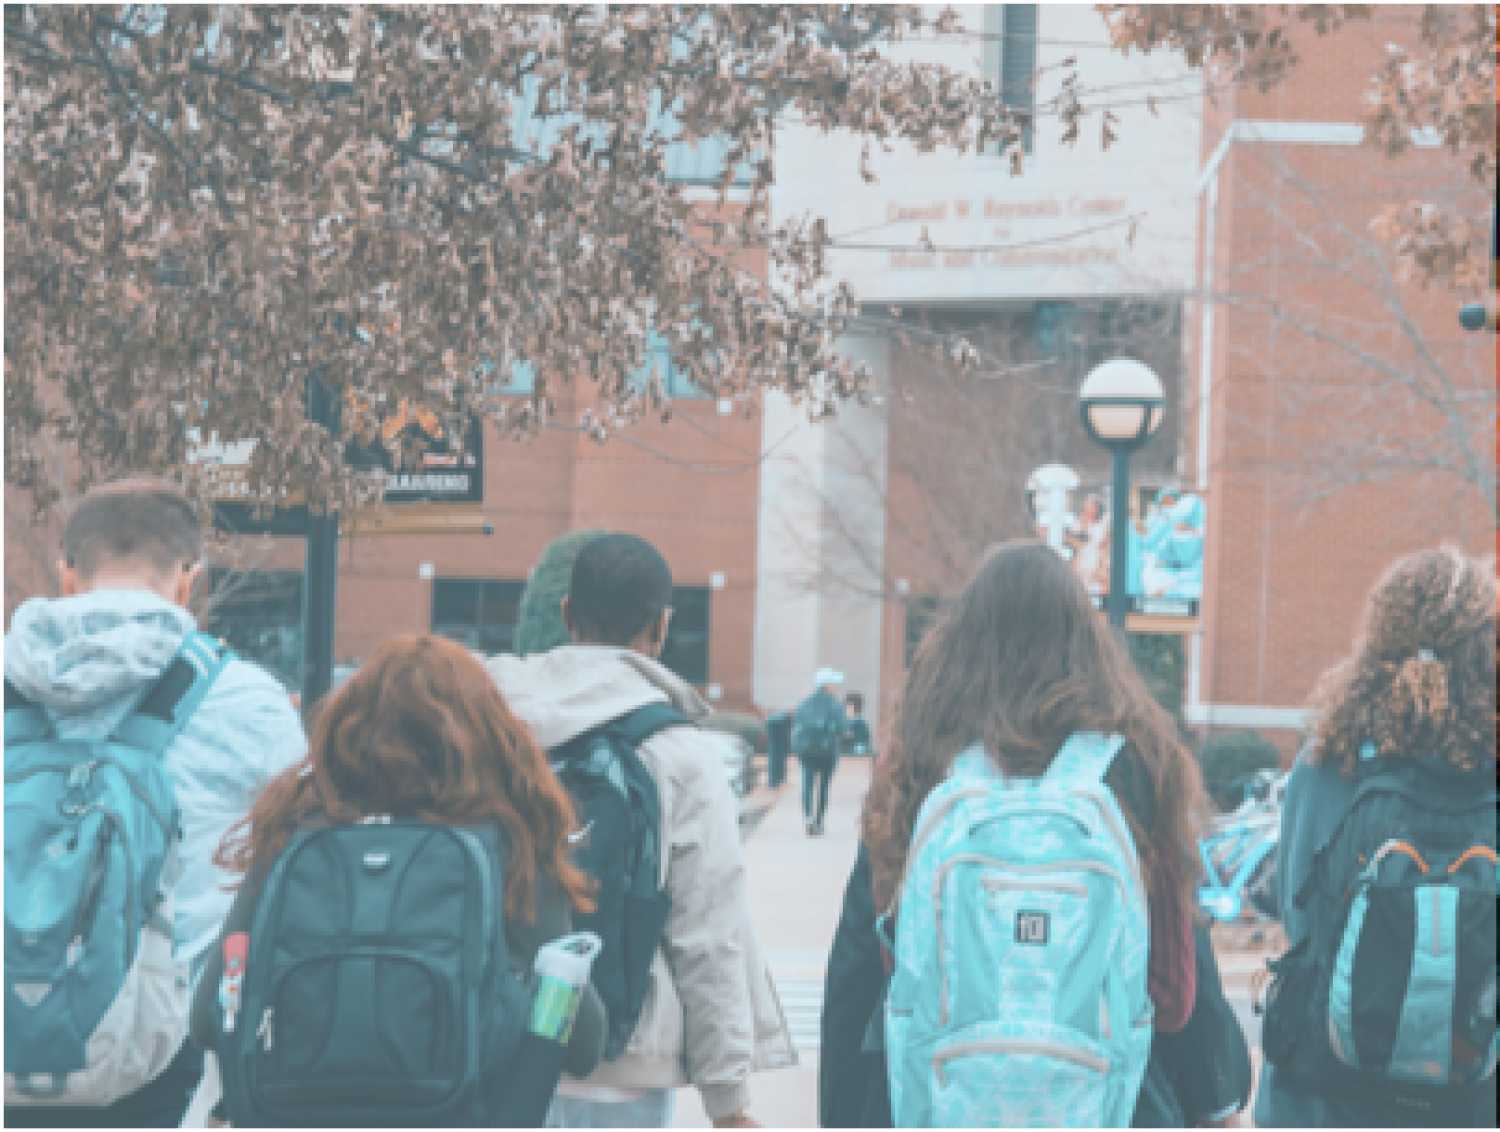 Students with backpacks walking